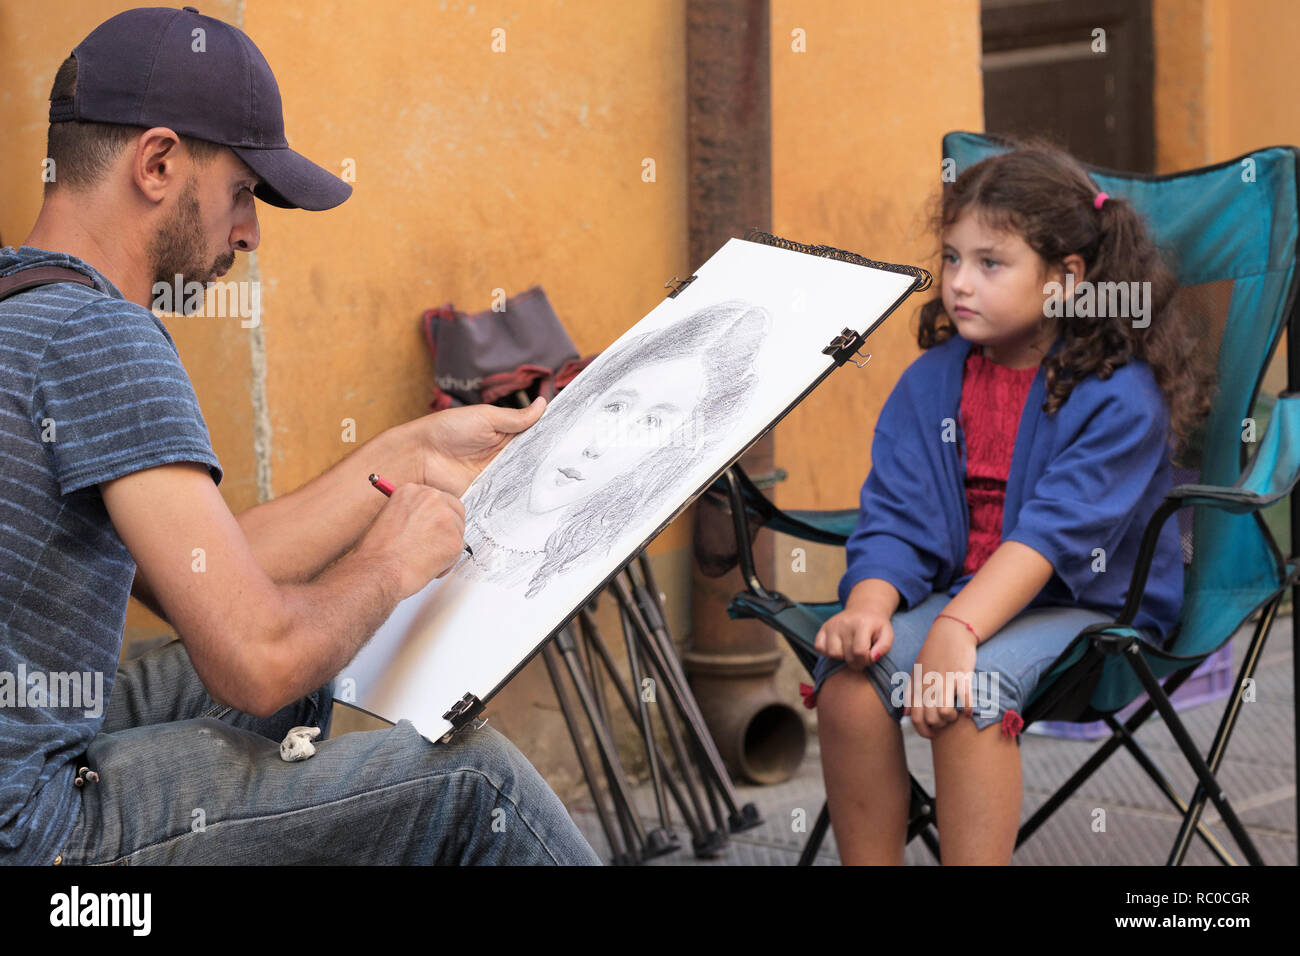 Street artist sketching young child in busy public street, Pisa,Tuscany, Italy, Europe, - Stock Image